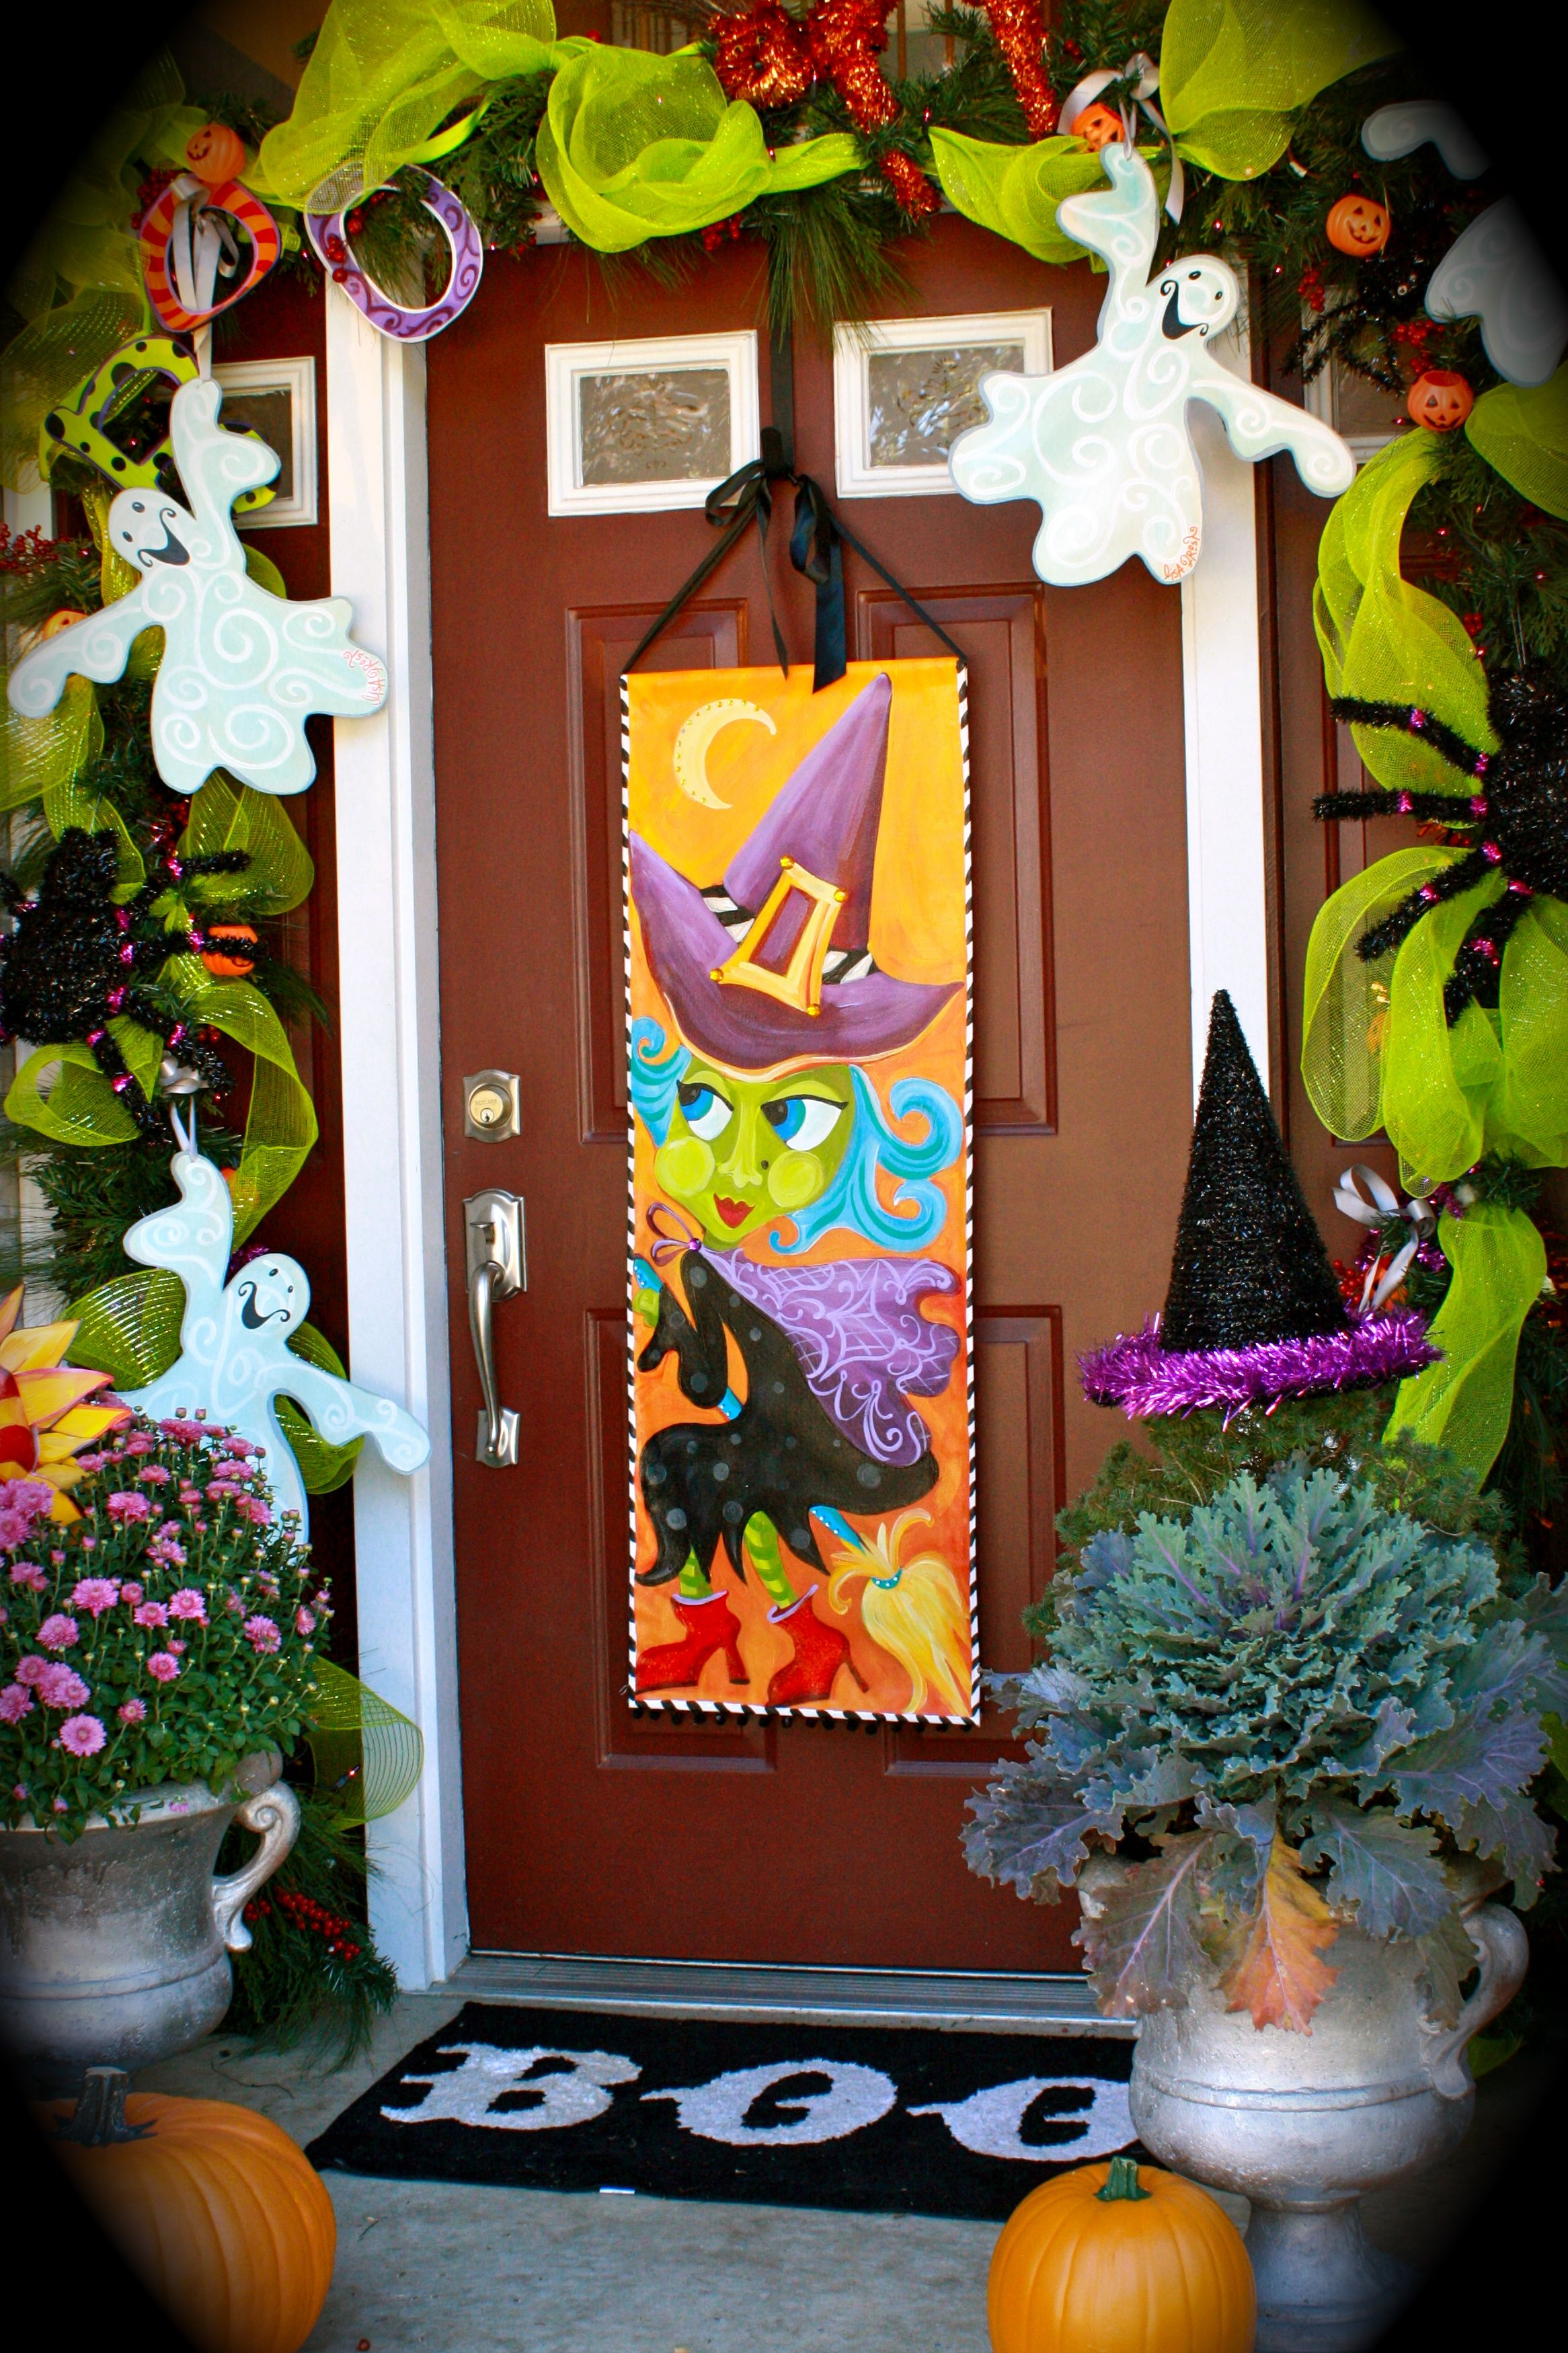 IMG_9586jpg 2,332×3,499 pixels Trick or Treat Pinterest - Halloween Door Decorations